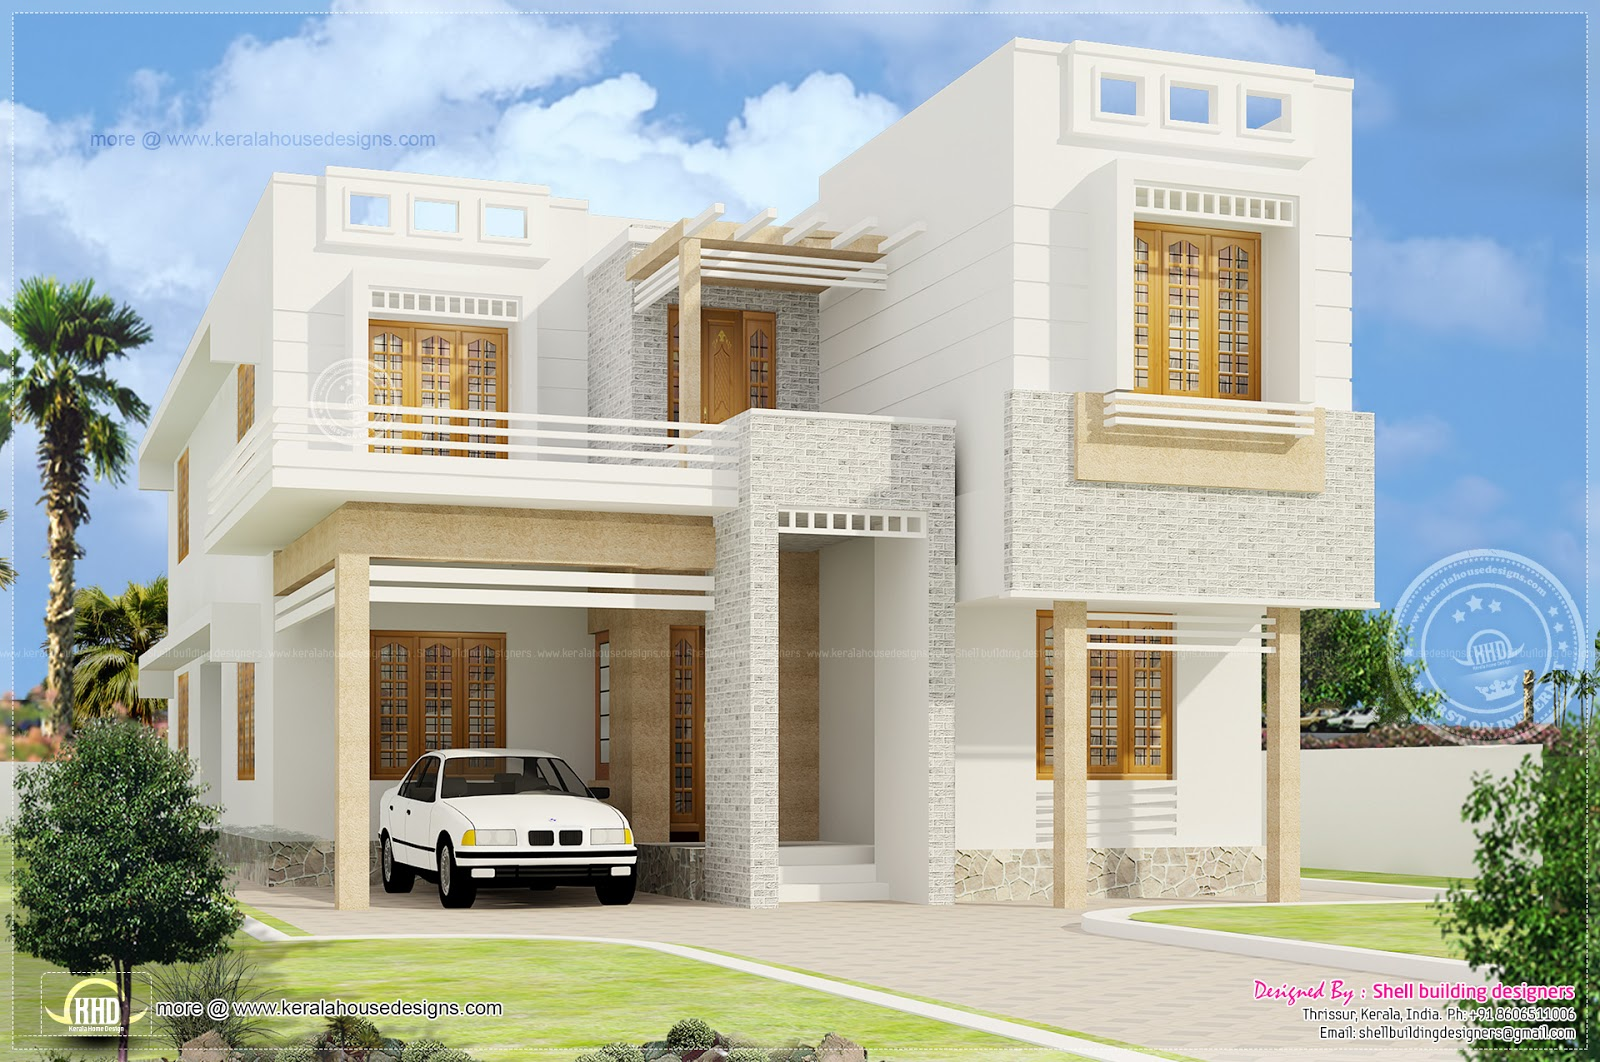 Beautiful 4 bedroom house exterior elevation kerala home design and floor plans Gorgeous small bedroom designs for indian homes